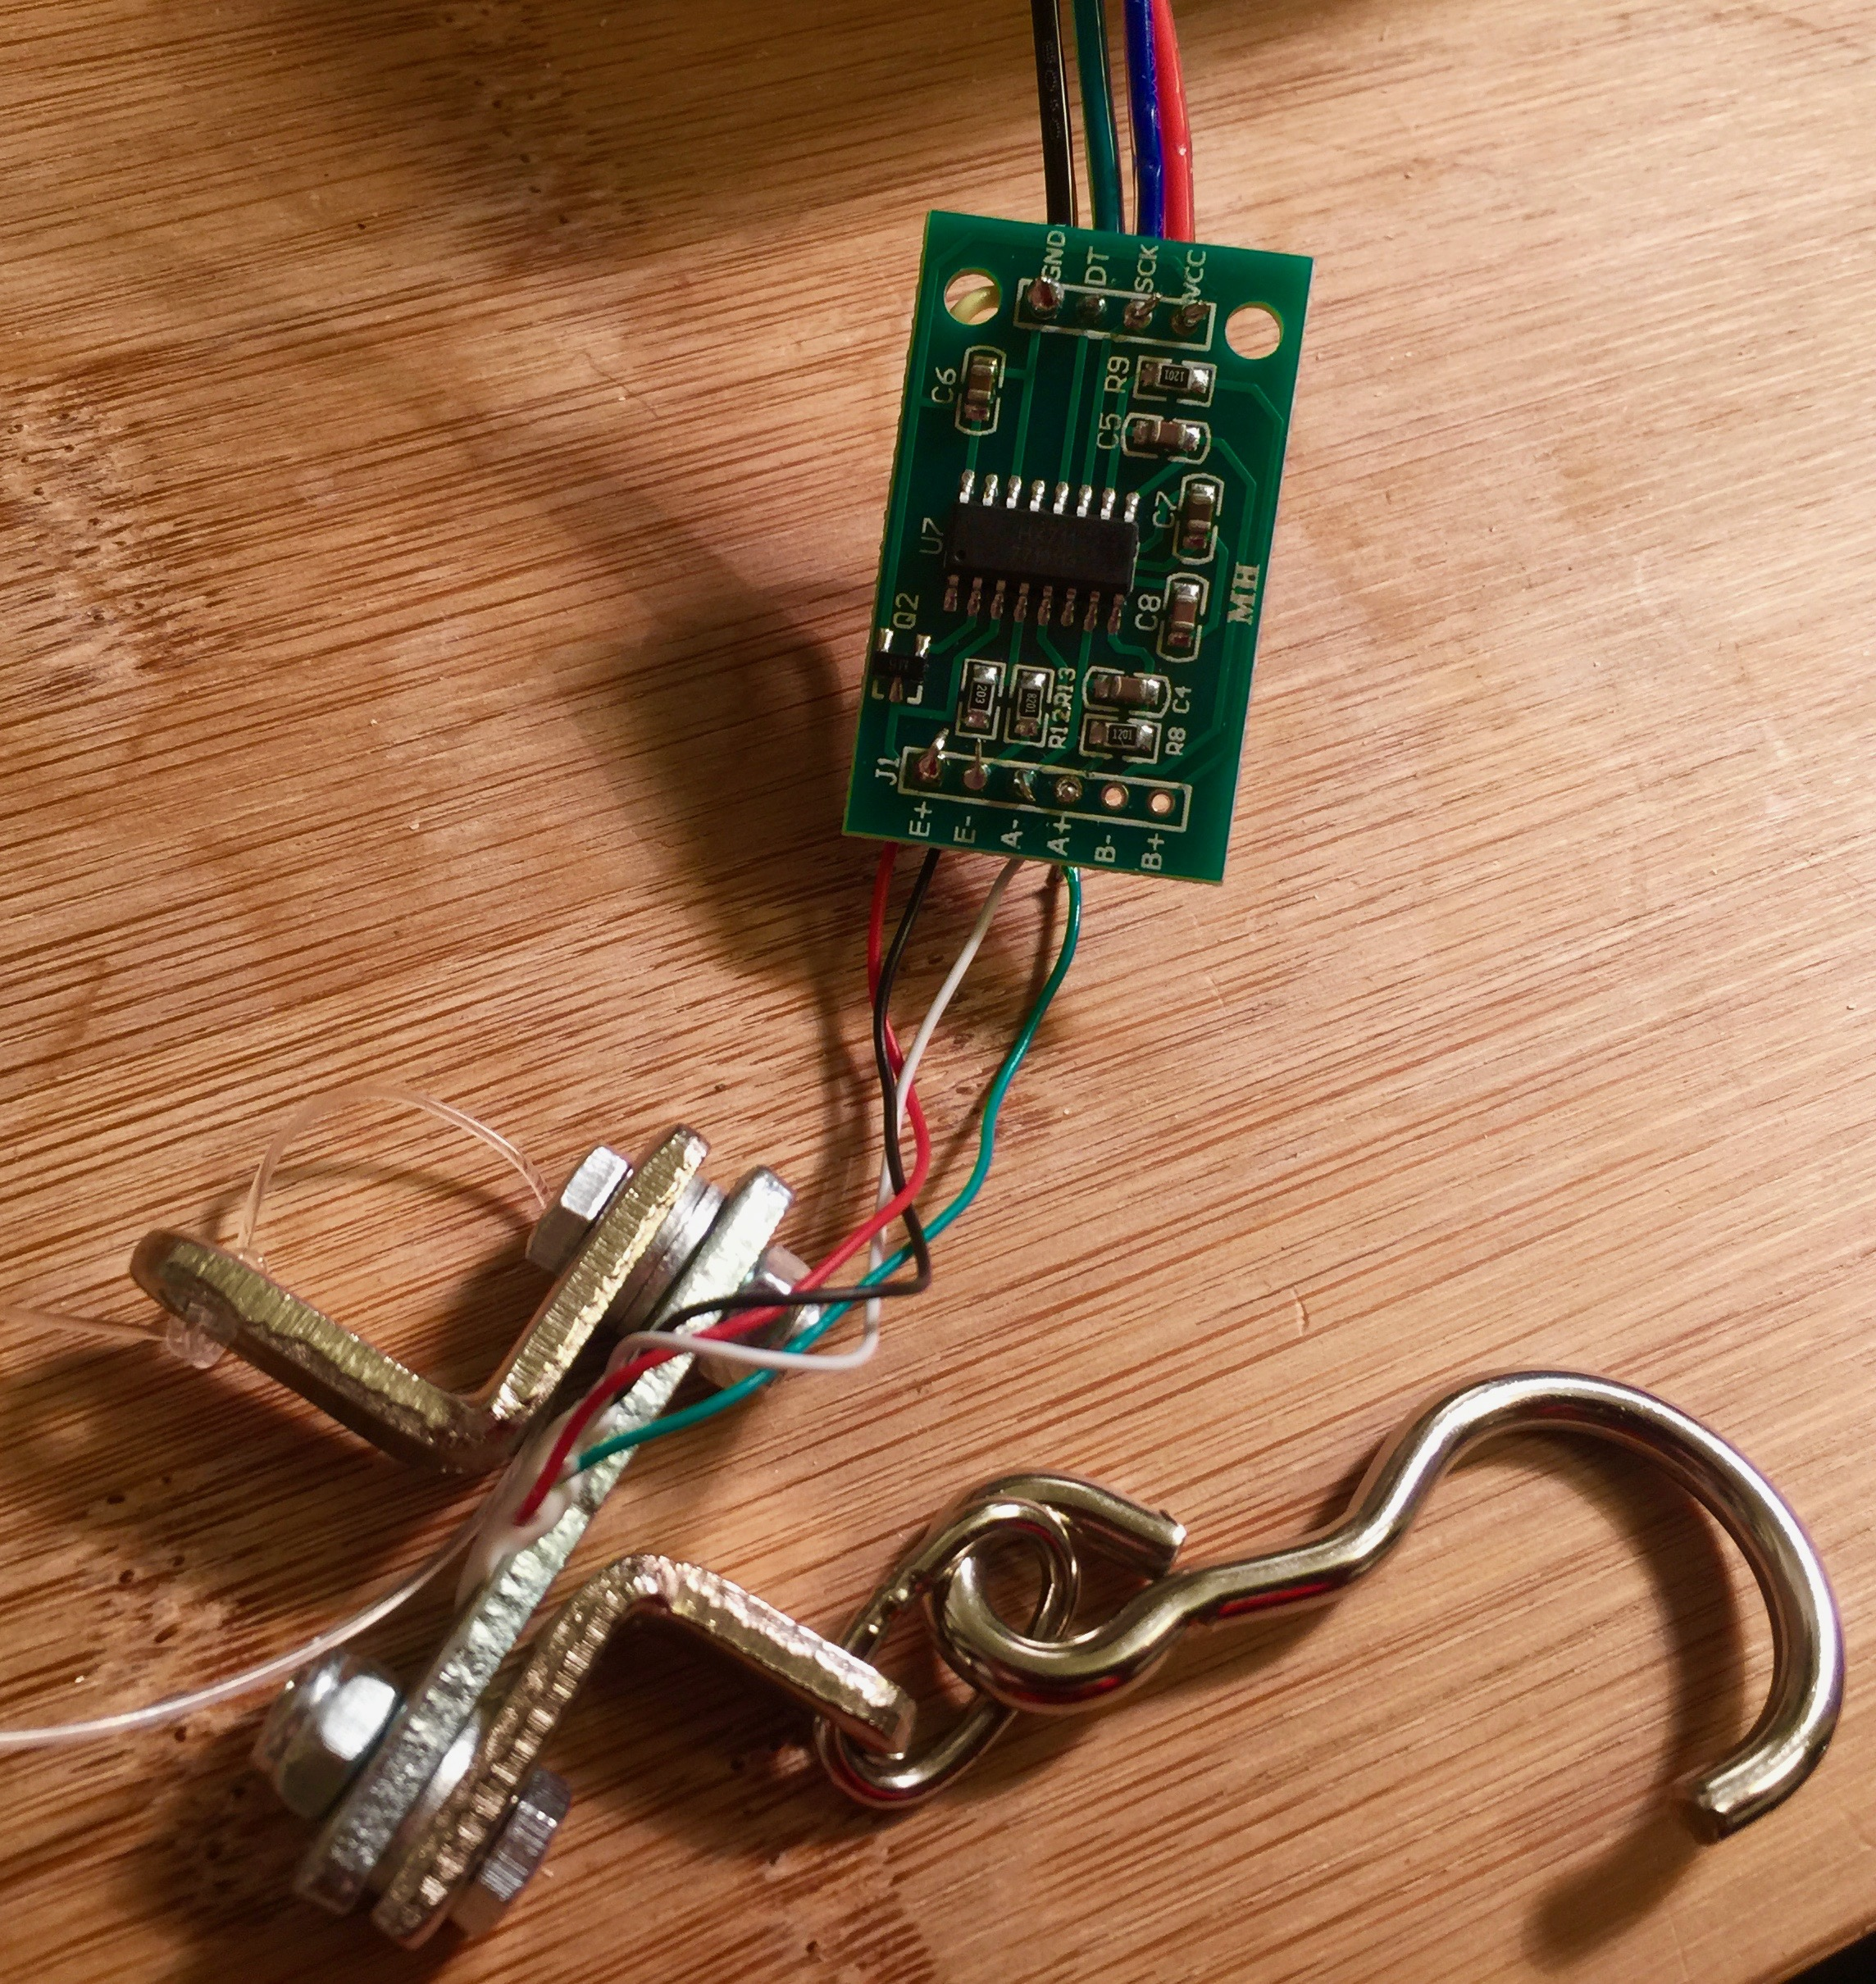 Picture of Connecting Your Hanging Load Cell to the HX711 Module and to the Arduino.